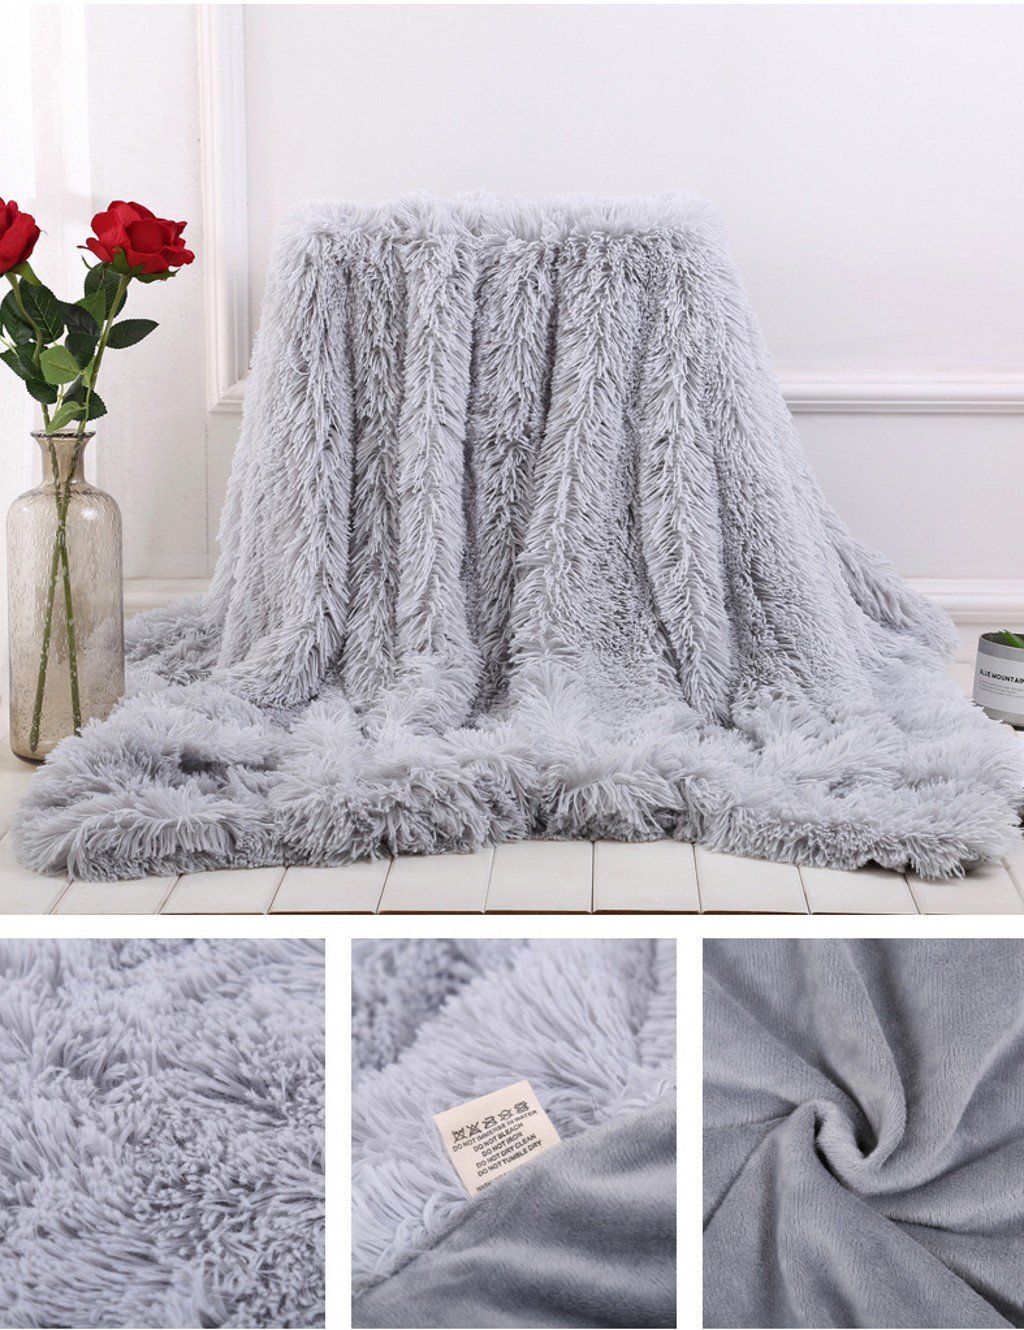 Soffte Cloud Super Soft Long Shaggy Warm Plush Fannel Blanket Throw Qulit Cozy Couch Blanket For Winter Twin Grey63x79 Fin Couch Blanket Blanket Cozy Couch